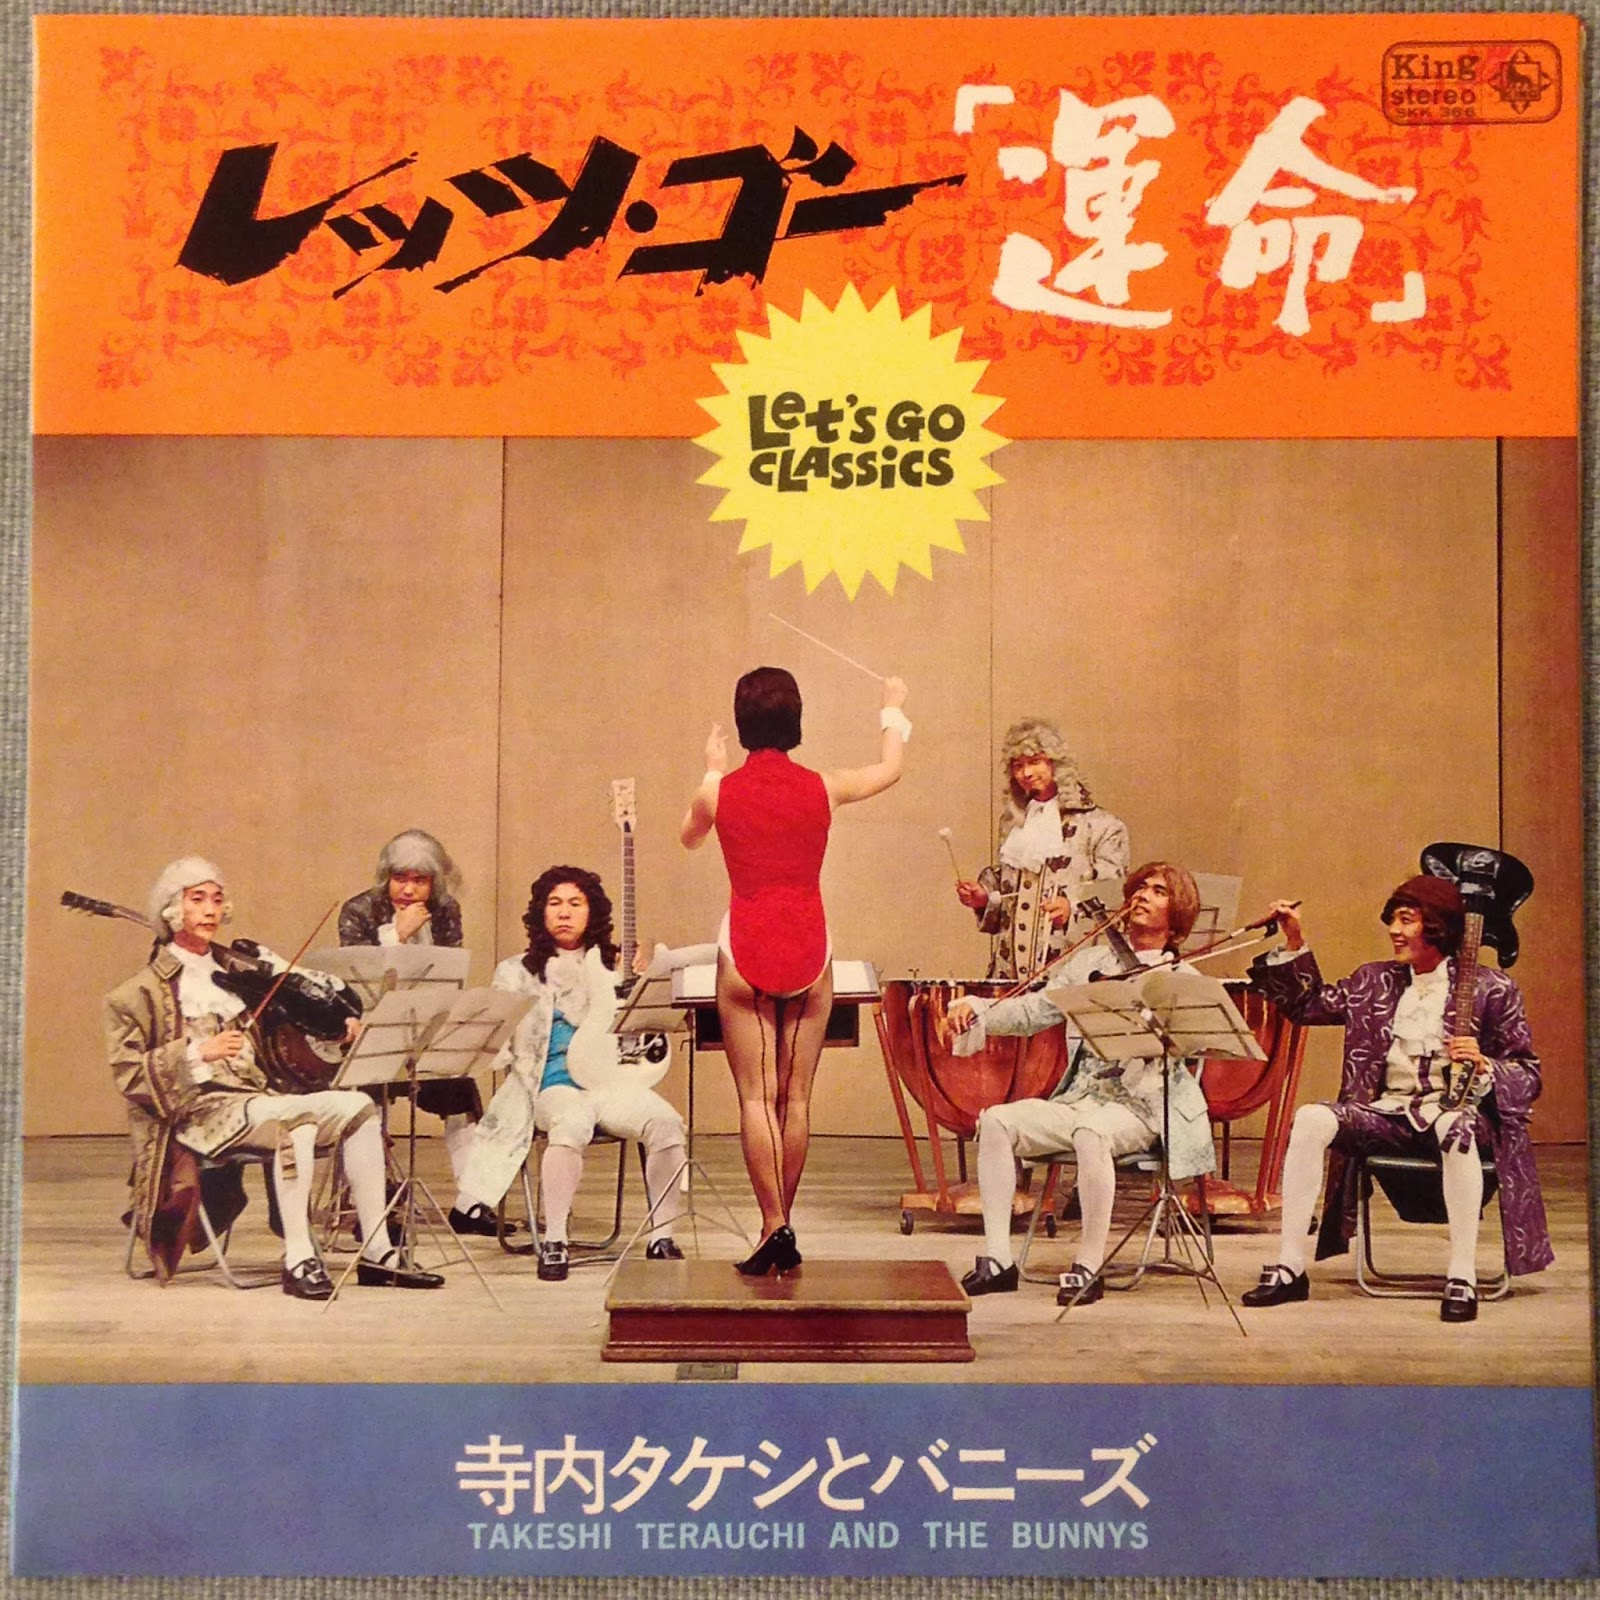 Takeshi Terauchi and The Bunnys - Let's Go Classics